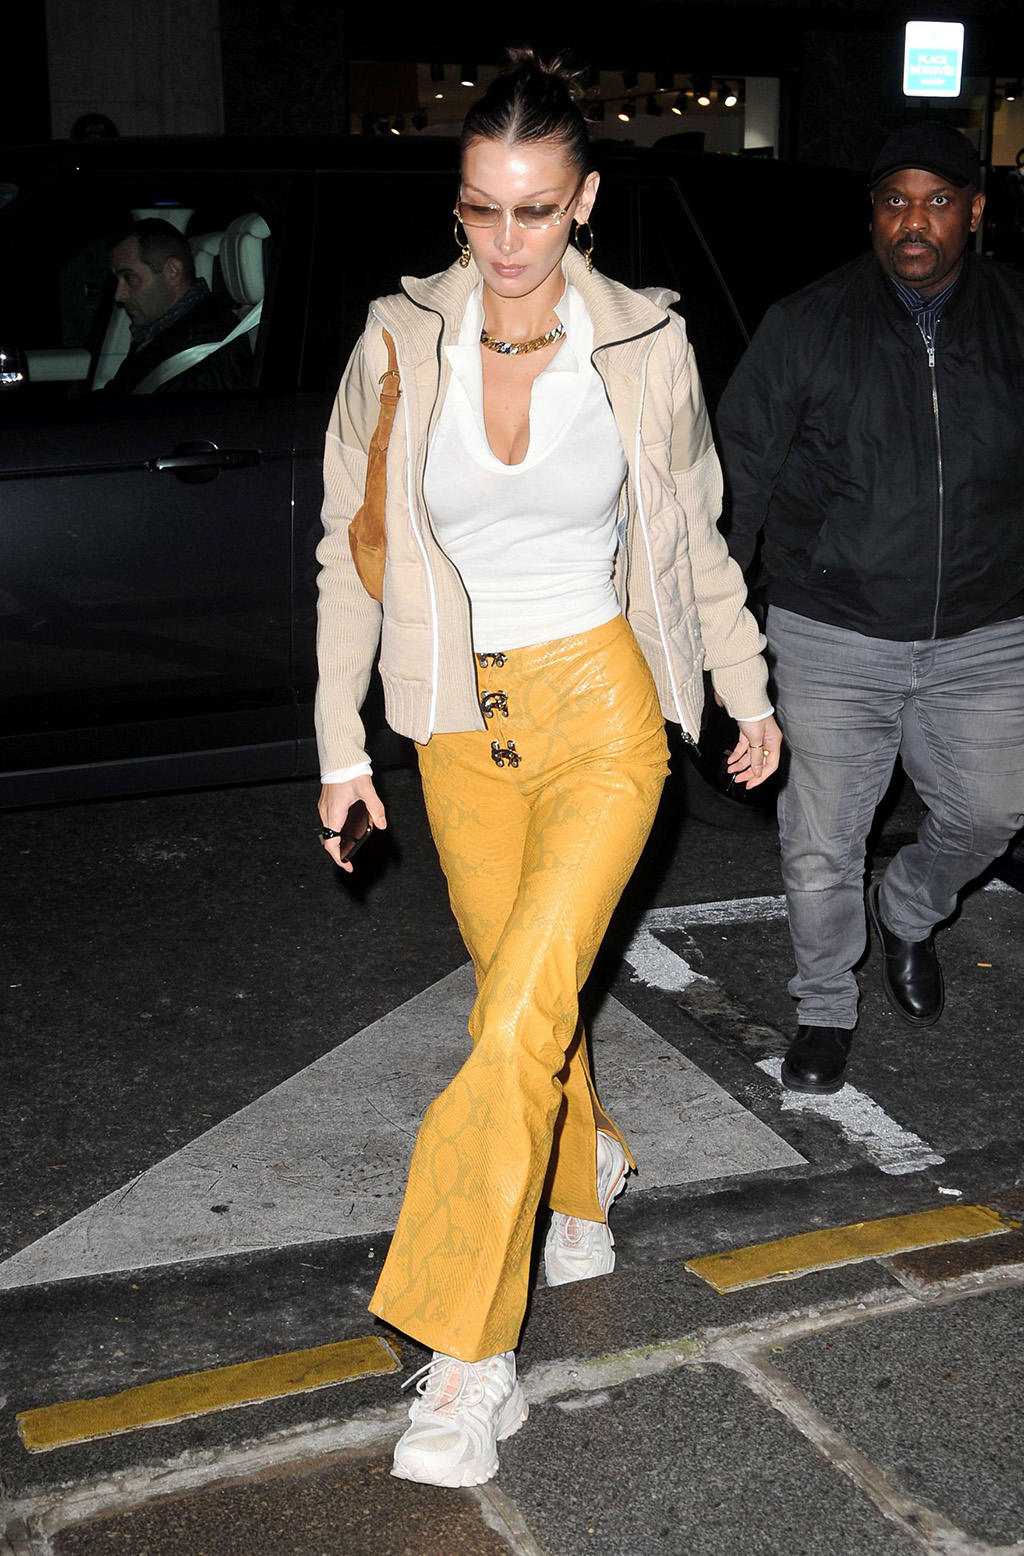 Bella Hadid, celebrity style, li-ning sneakers, snake-print pants, yellow pants, street style, Bella Hadid out and about, Paris, France - 15 Jan 2020Wearing Leo Gaia, TrousersBella HadidBella Hadid out and about, Paris, France - 15 Jan 2020Wearing Leo Gaia, Trousers